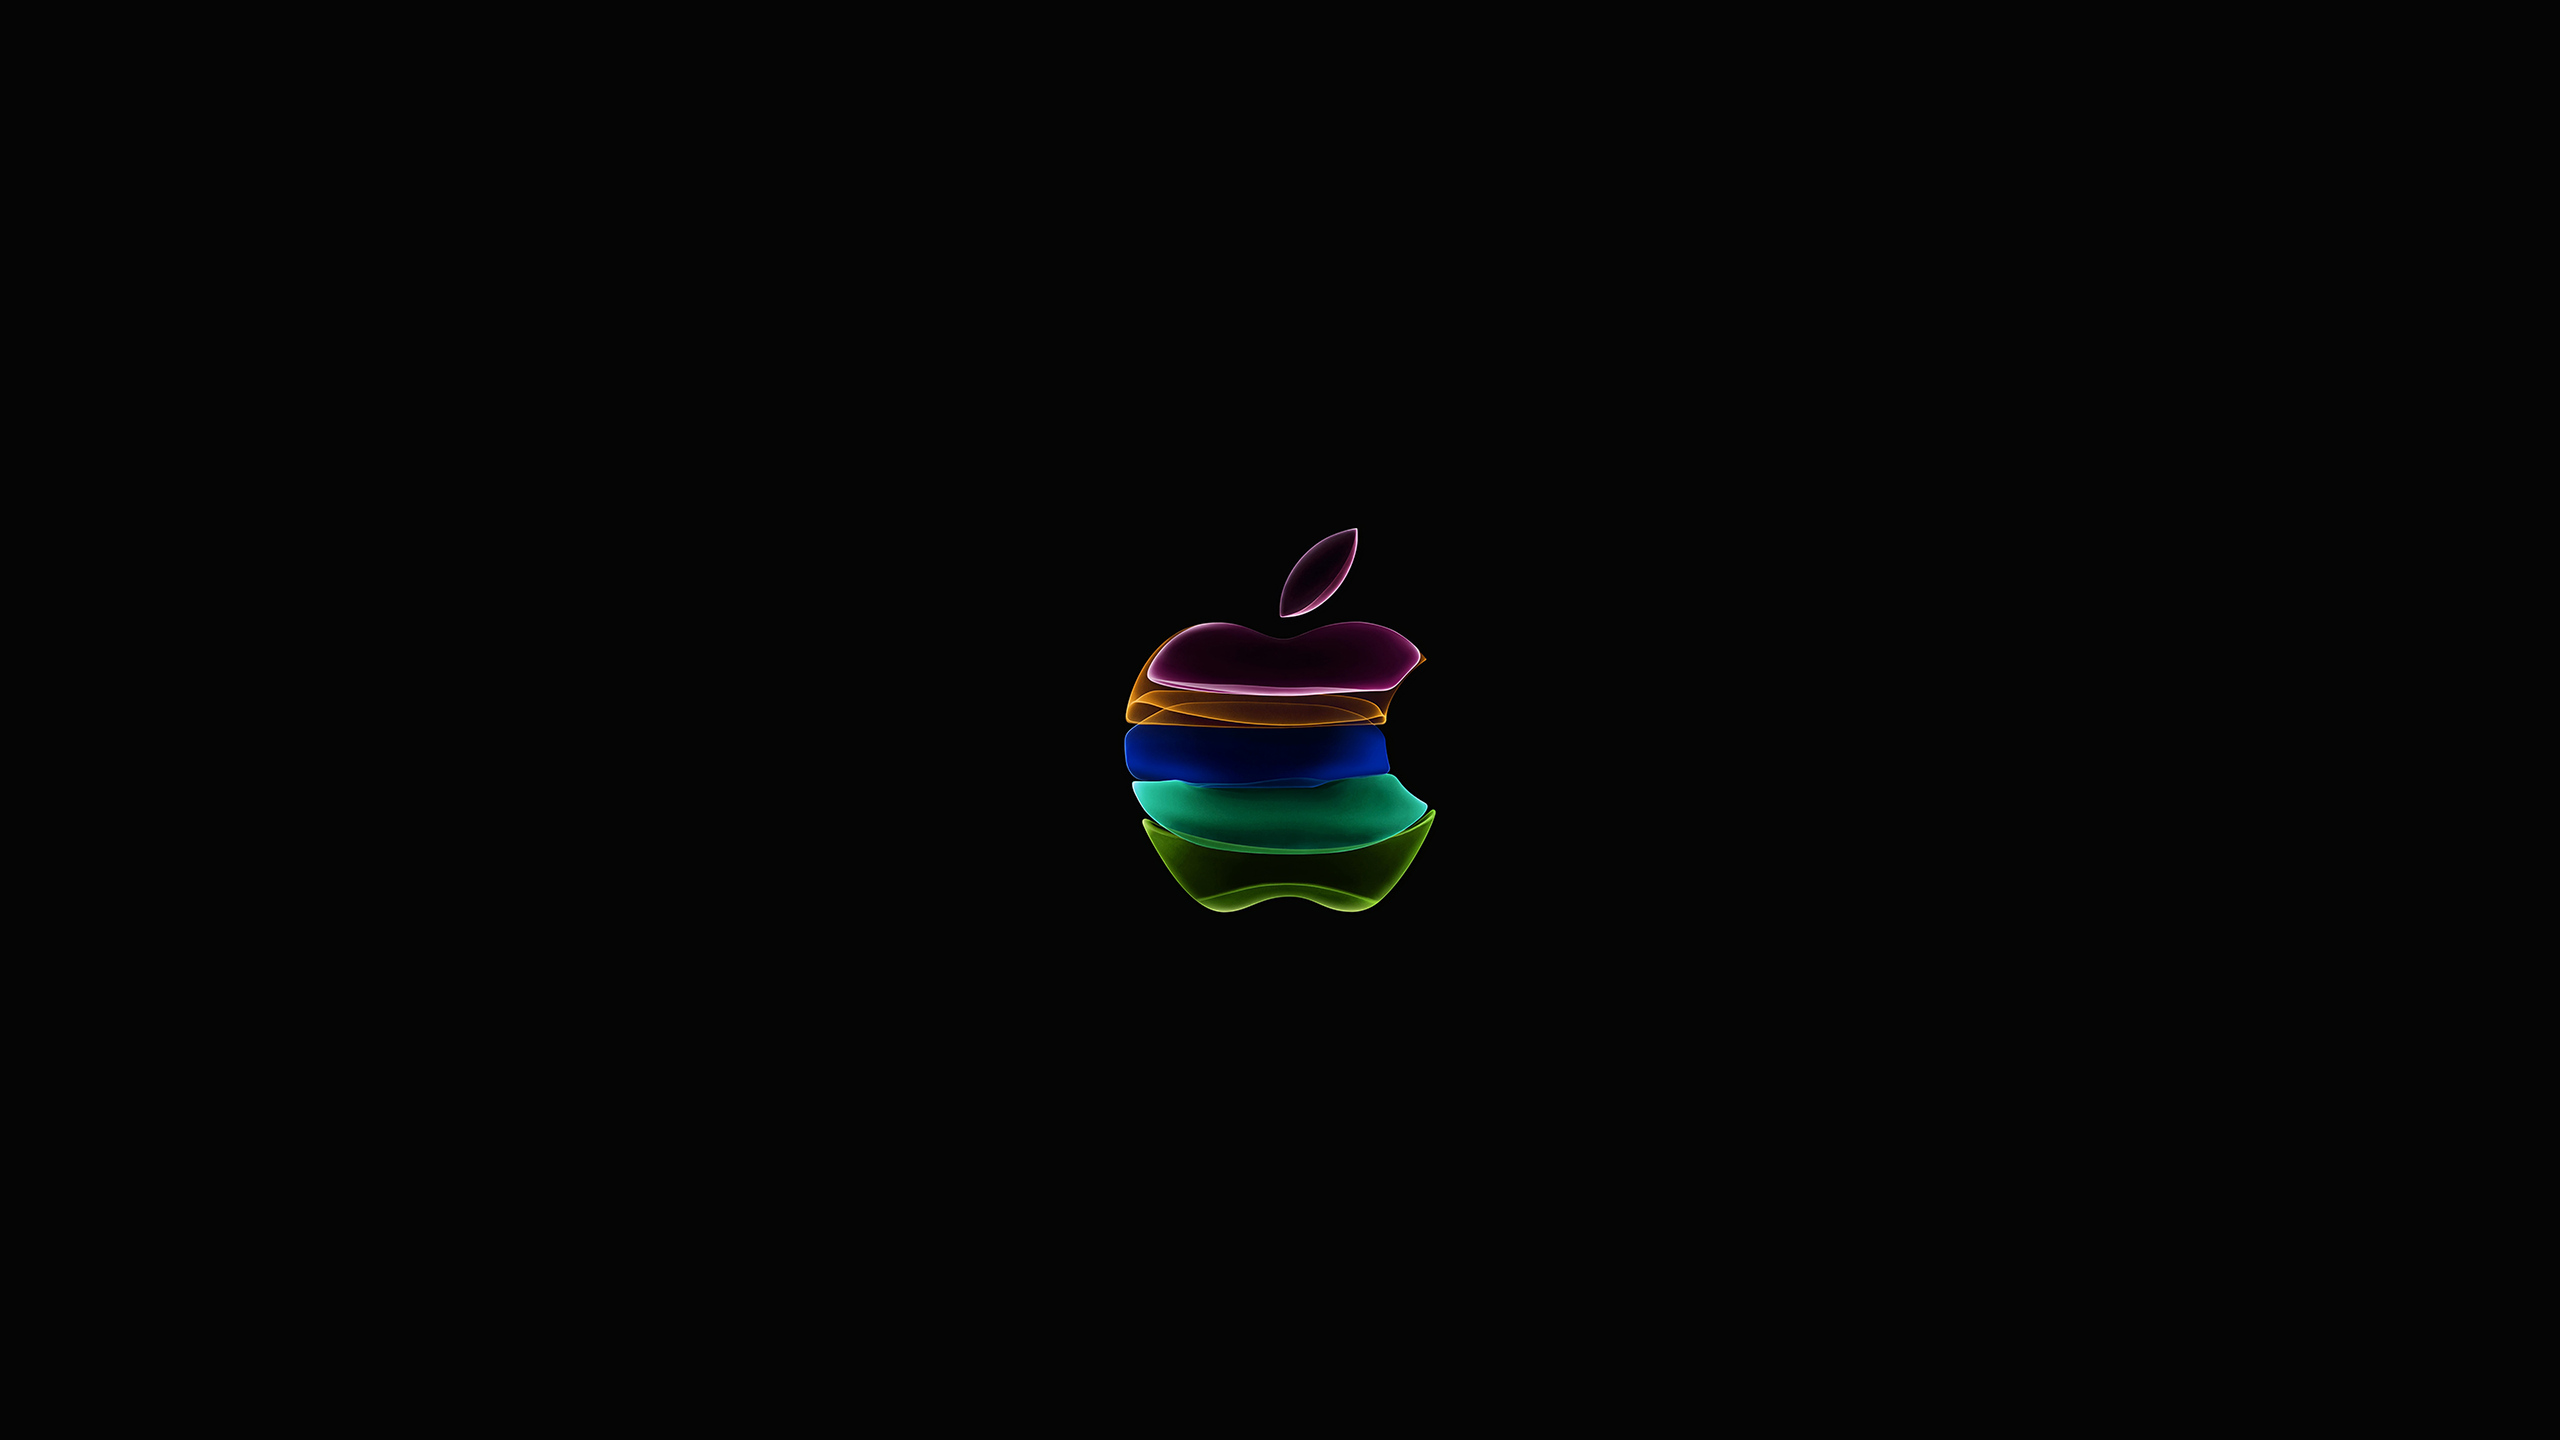 2560x1440 Iphone 11 Event Logo 4k 1440p Resolution Hd 4k Wallpapers Images Backgrounds Photos And Pictures